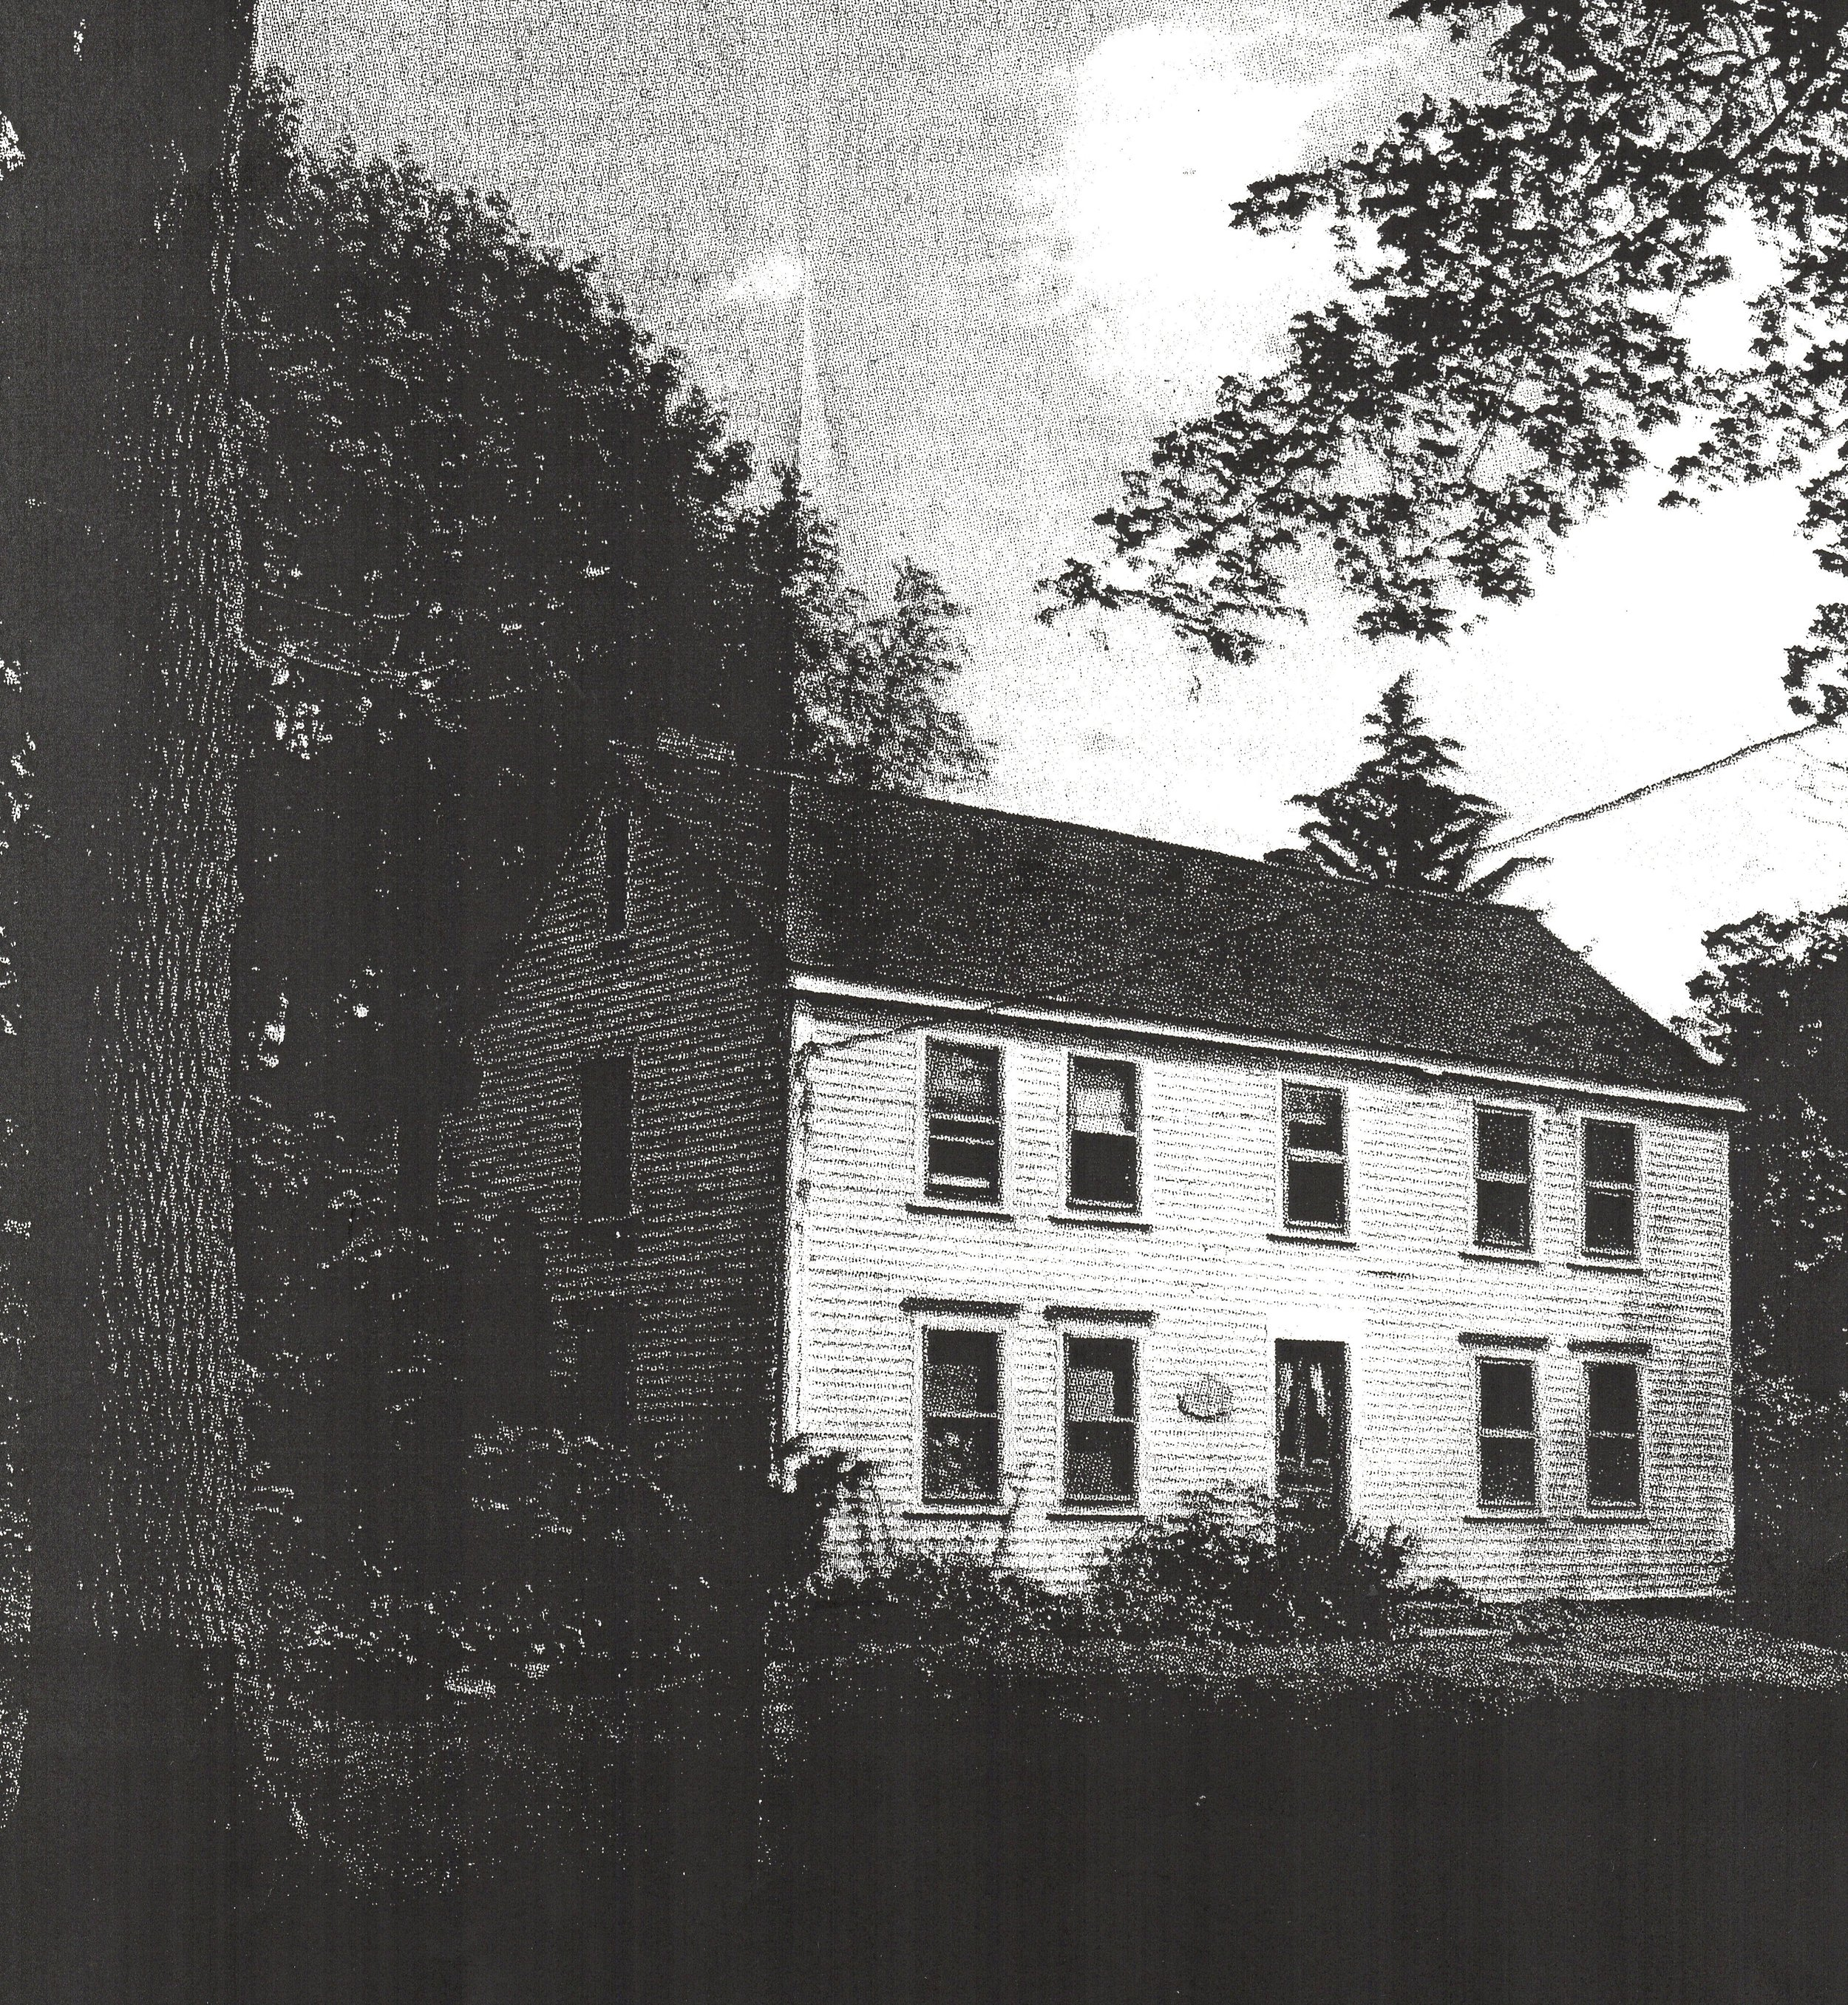 The Peletiah Morse Tavern (built 1748) on Eliot Street, where the South Natick militia gathered.